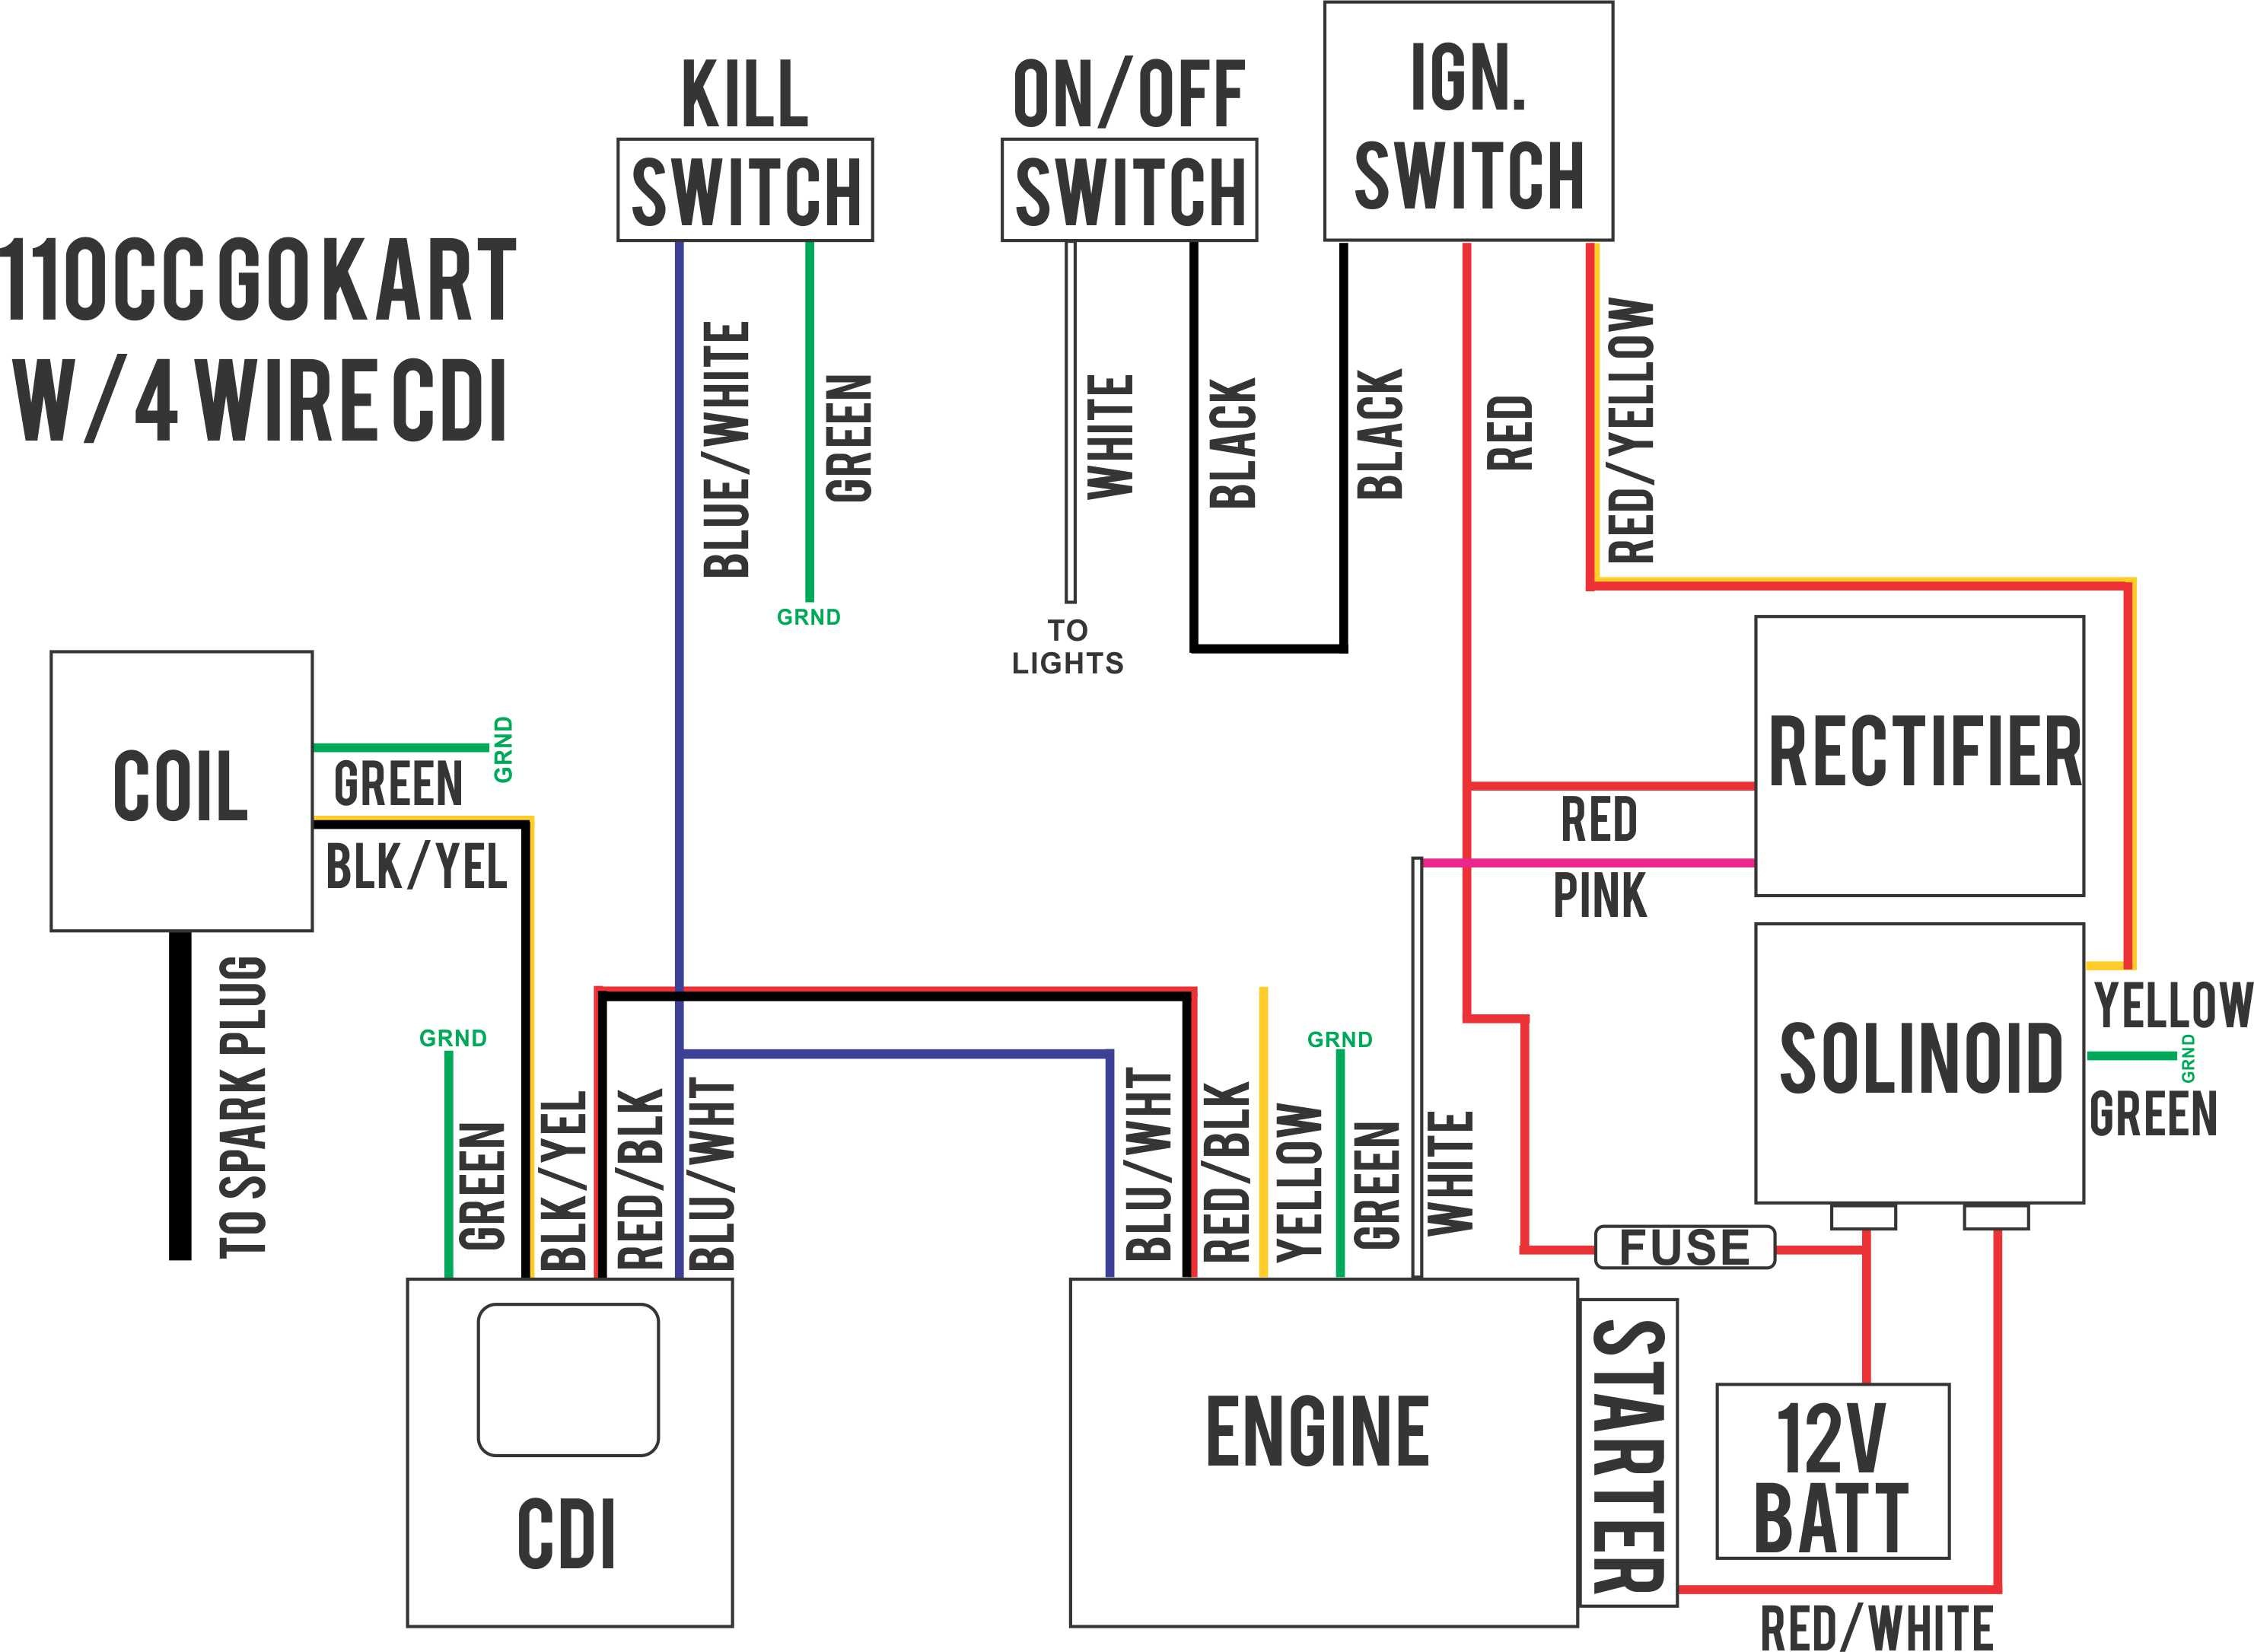 ssr 250 quad schematic wiring diagram kni Low Voltage Relay Wiring ssr 250 quad wiring diagram wiring library diagram a4 ssr 250 stator cover ssr 250 quad schematic